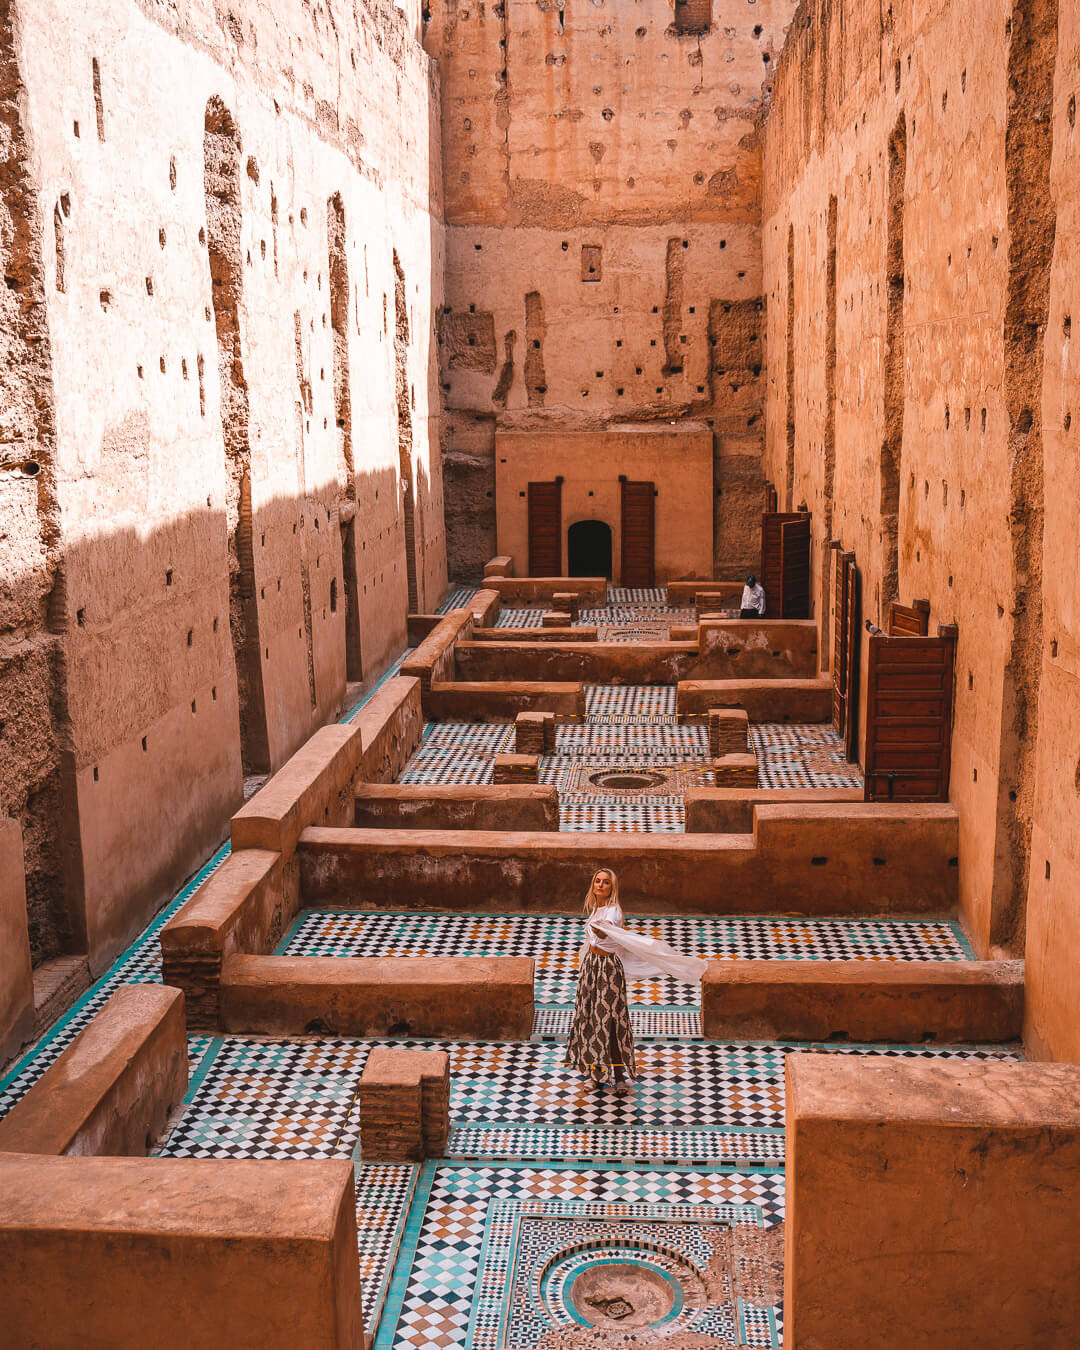 TOP 10 THINGS TO DO IN MARRAKECH - EL BADII PALACE